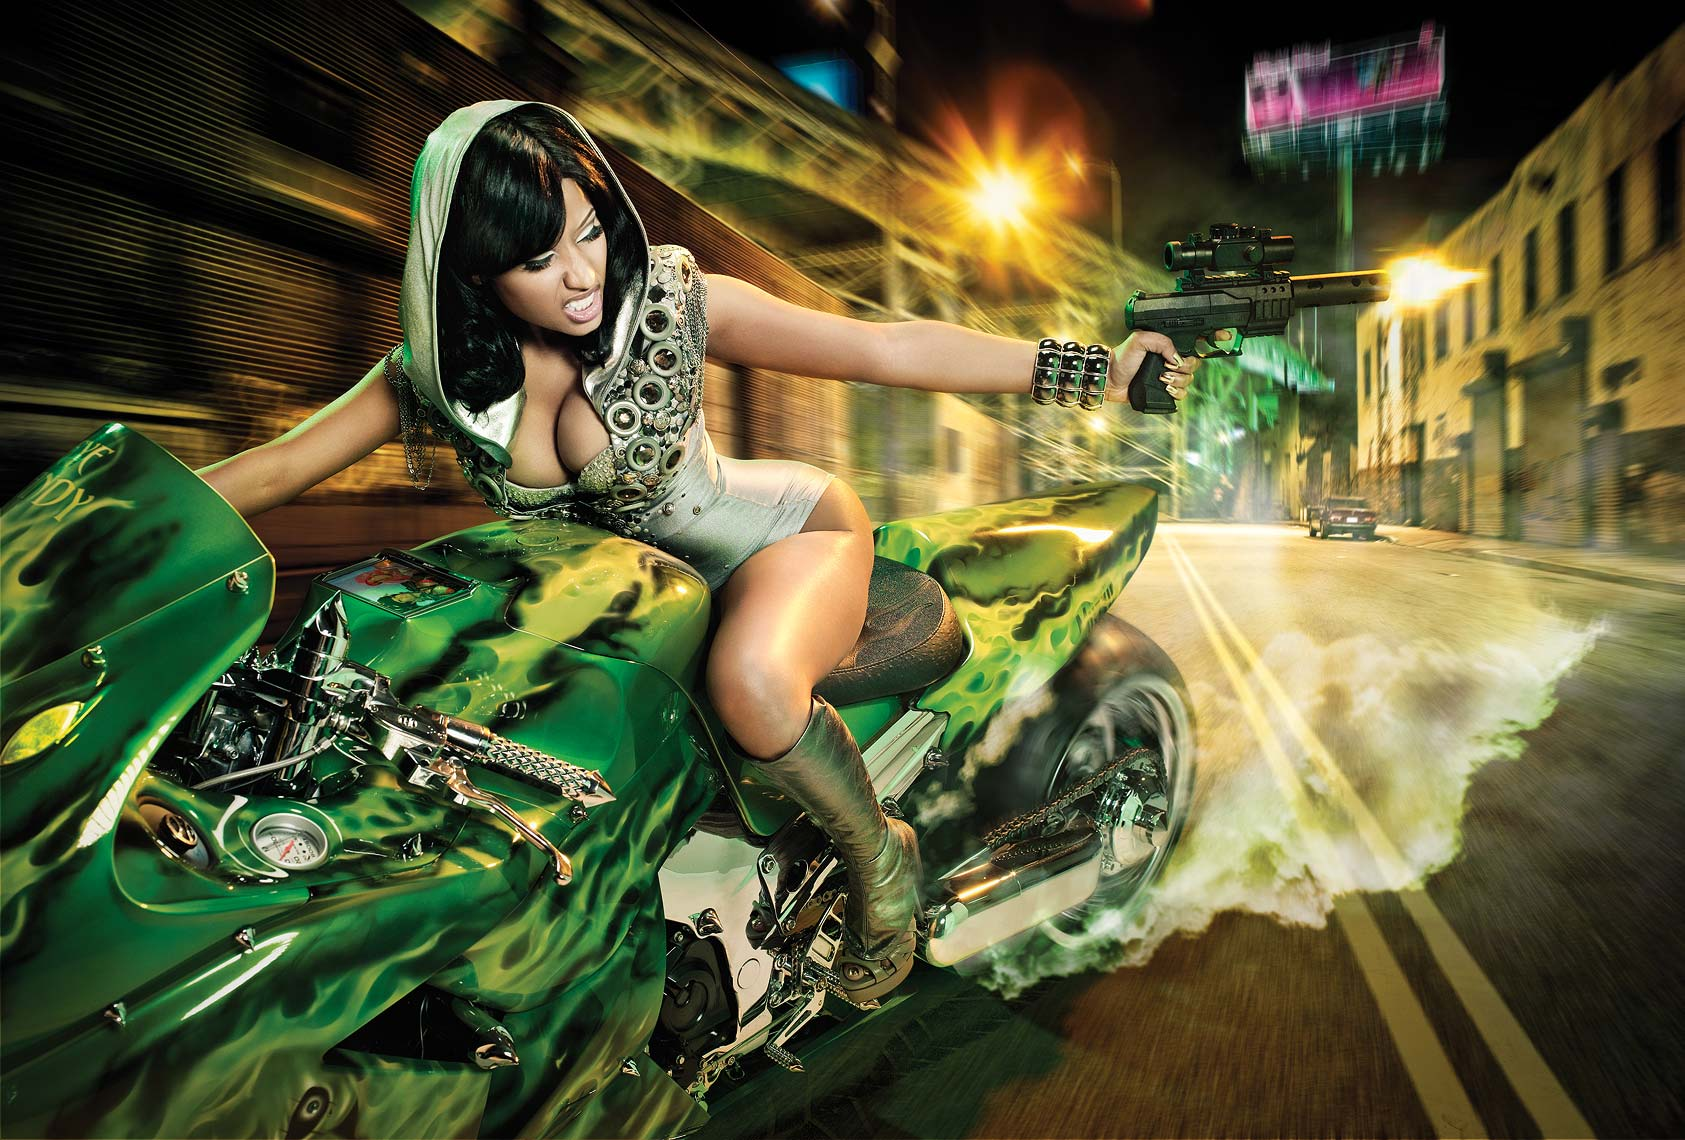 Howard-Huang-Nicki-Minaj-bike-gun-magazine-Blackmen